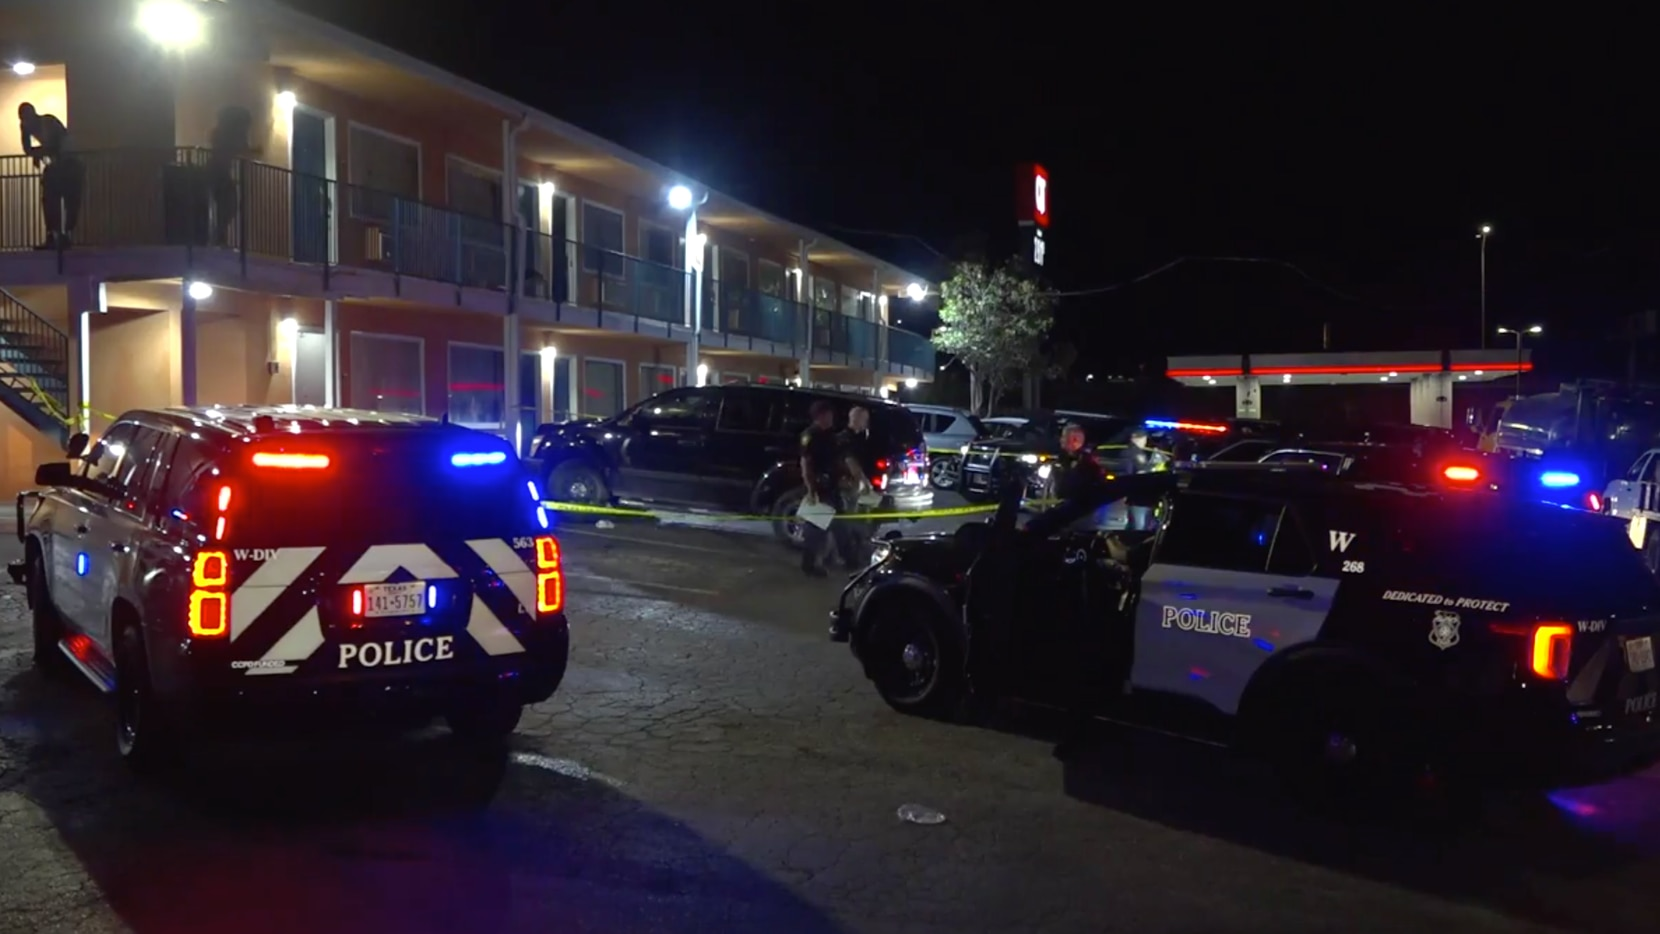 Police were called about 11:15 p.m. Sunday to the Relax Inn in Fort Worth.